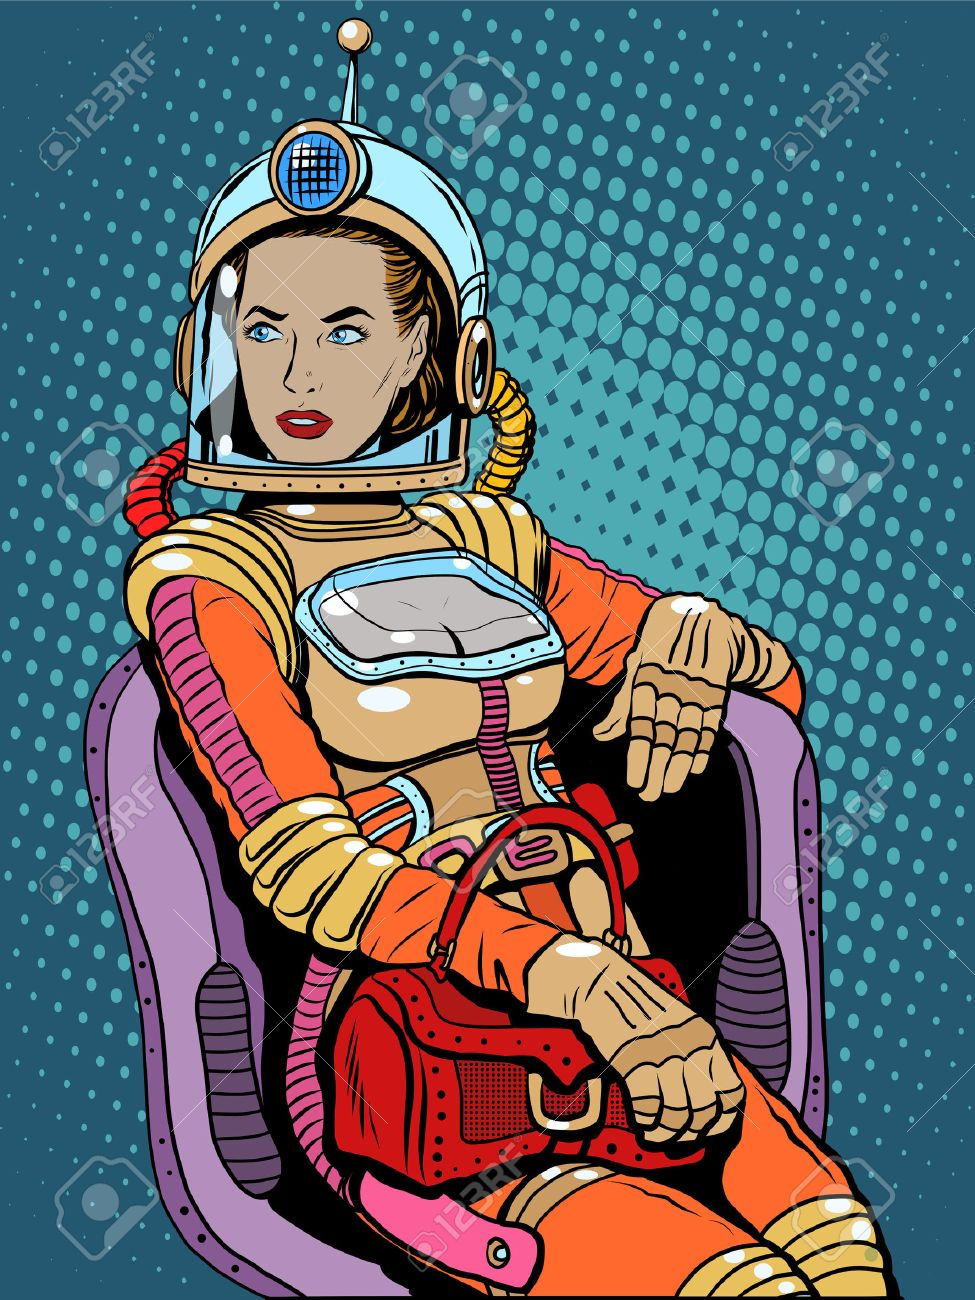 Space girl beauty science fiction pop art retro style. A woman sits in a chair. International womens day. Female power - 51904047